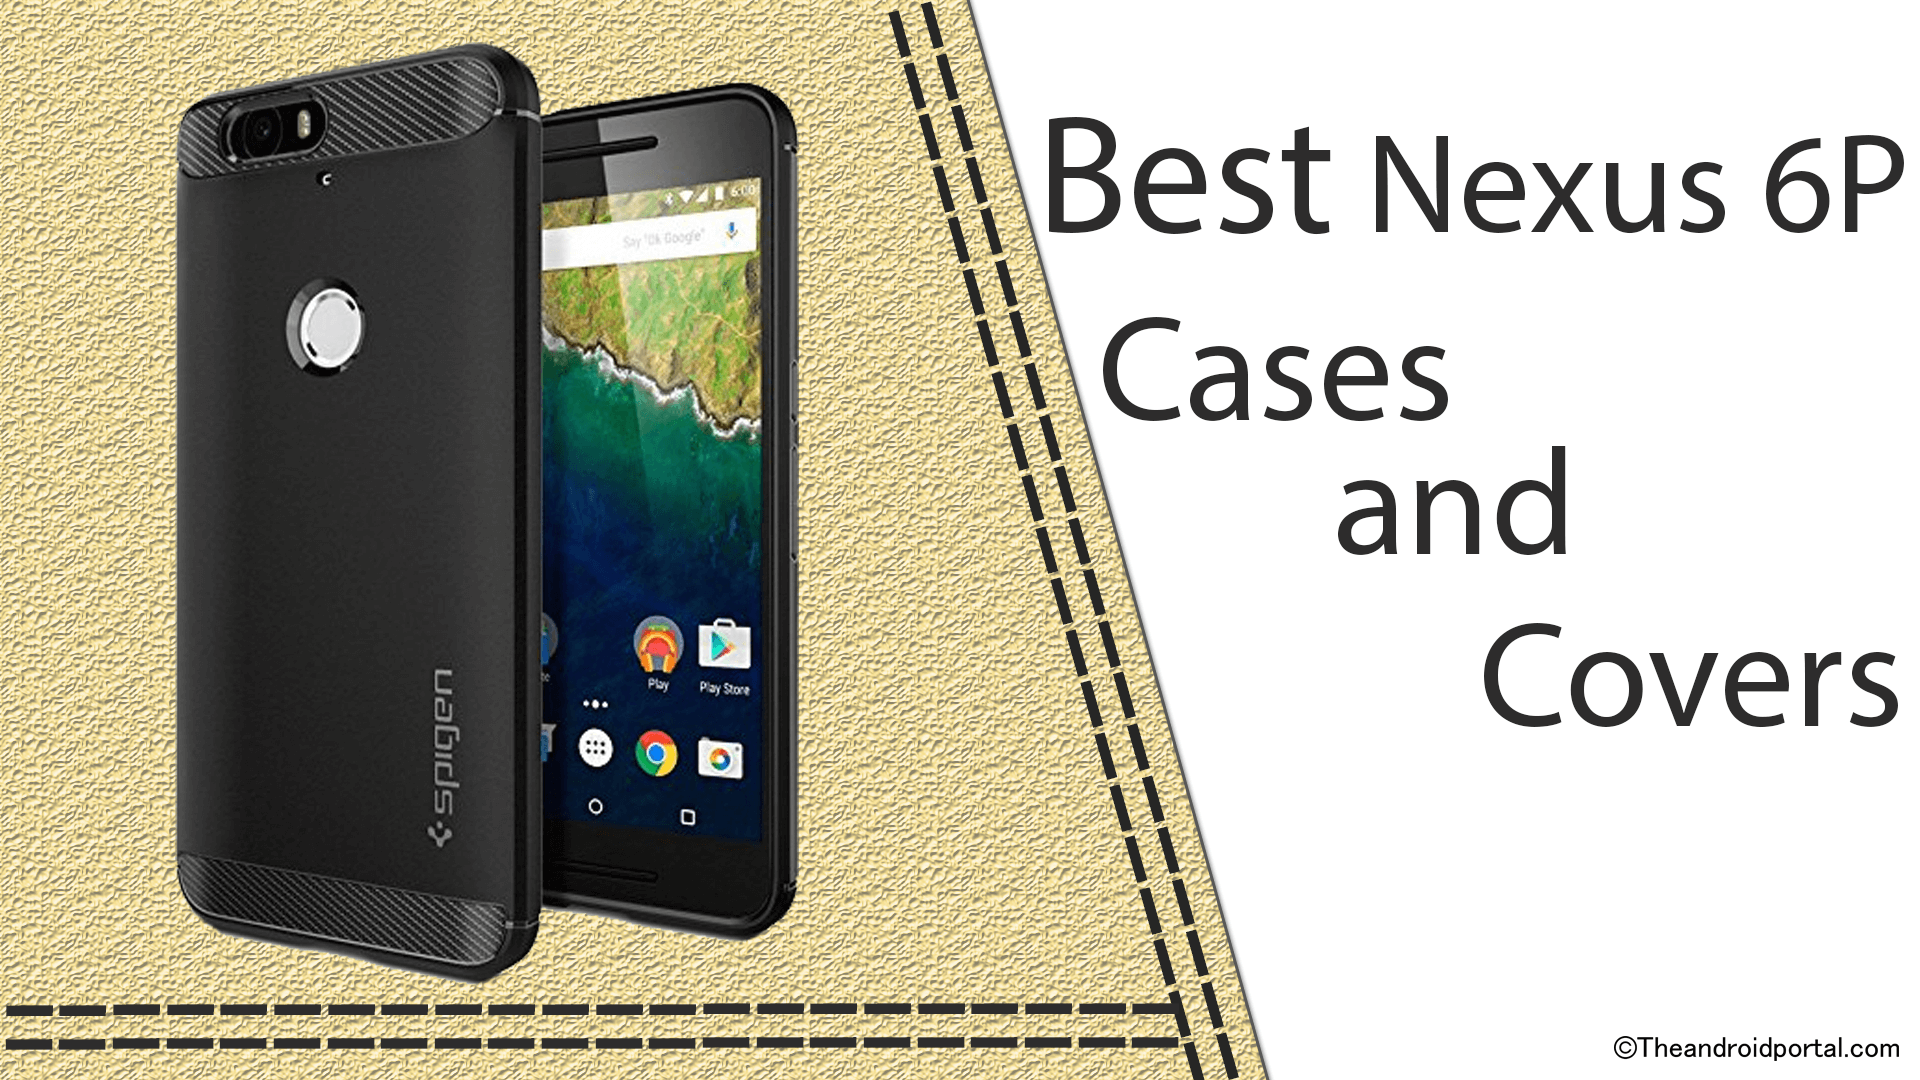 10 Best Nexus 6P Cases and Covers - theandroidportal.com